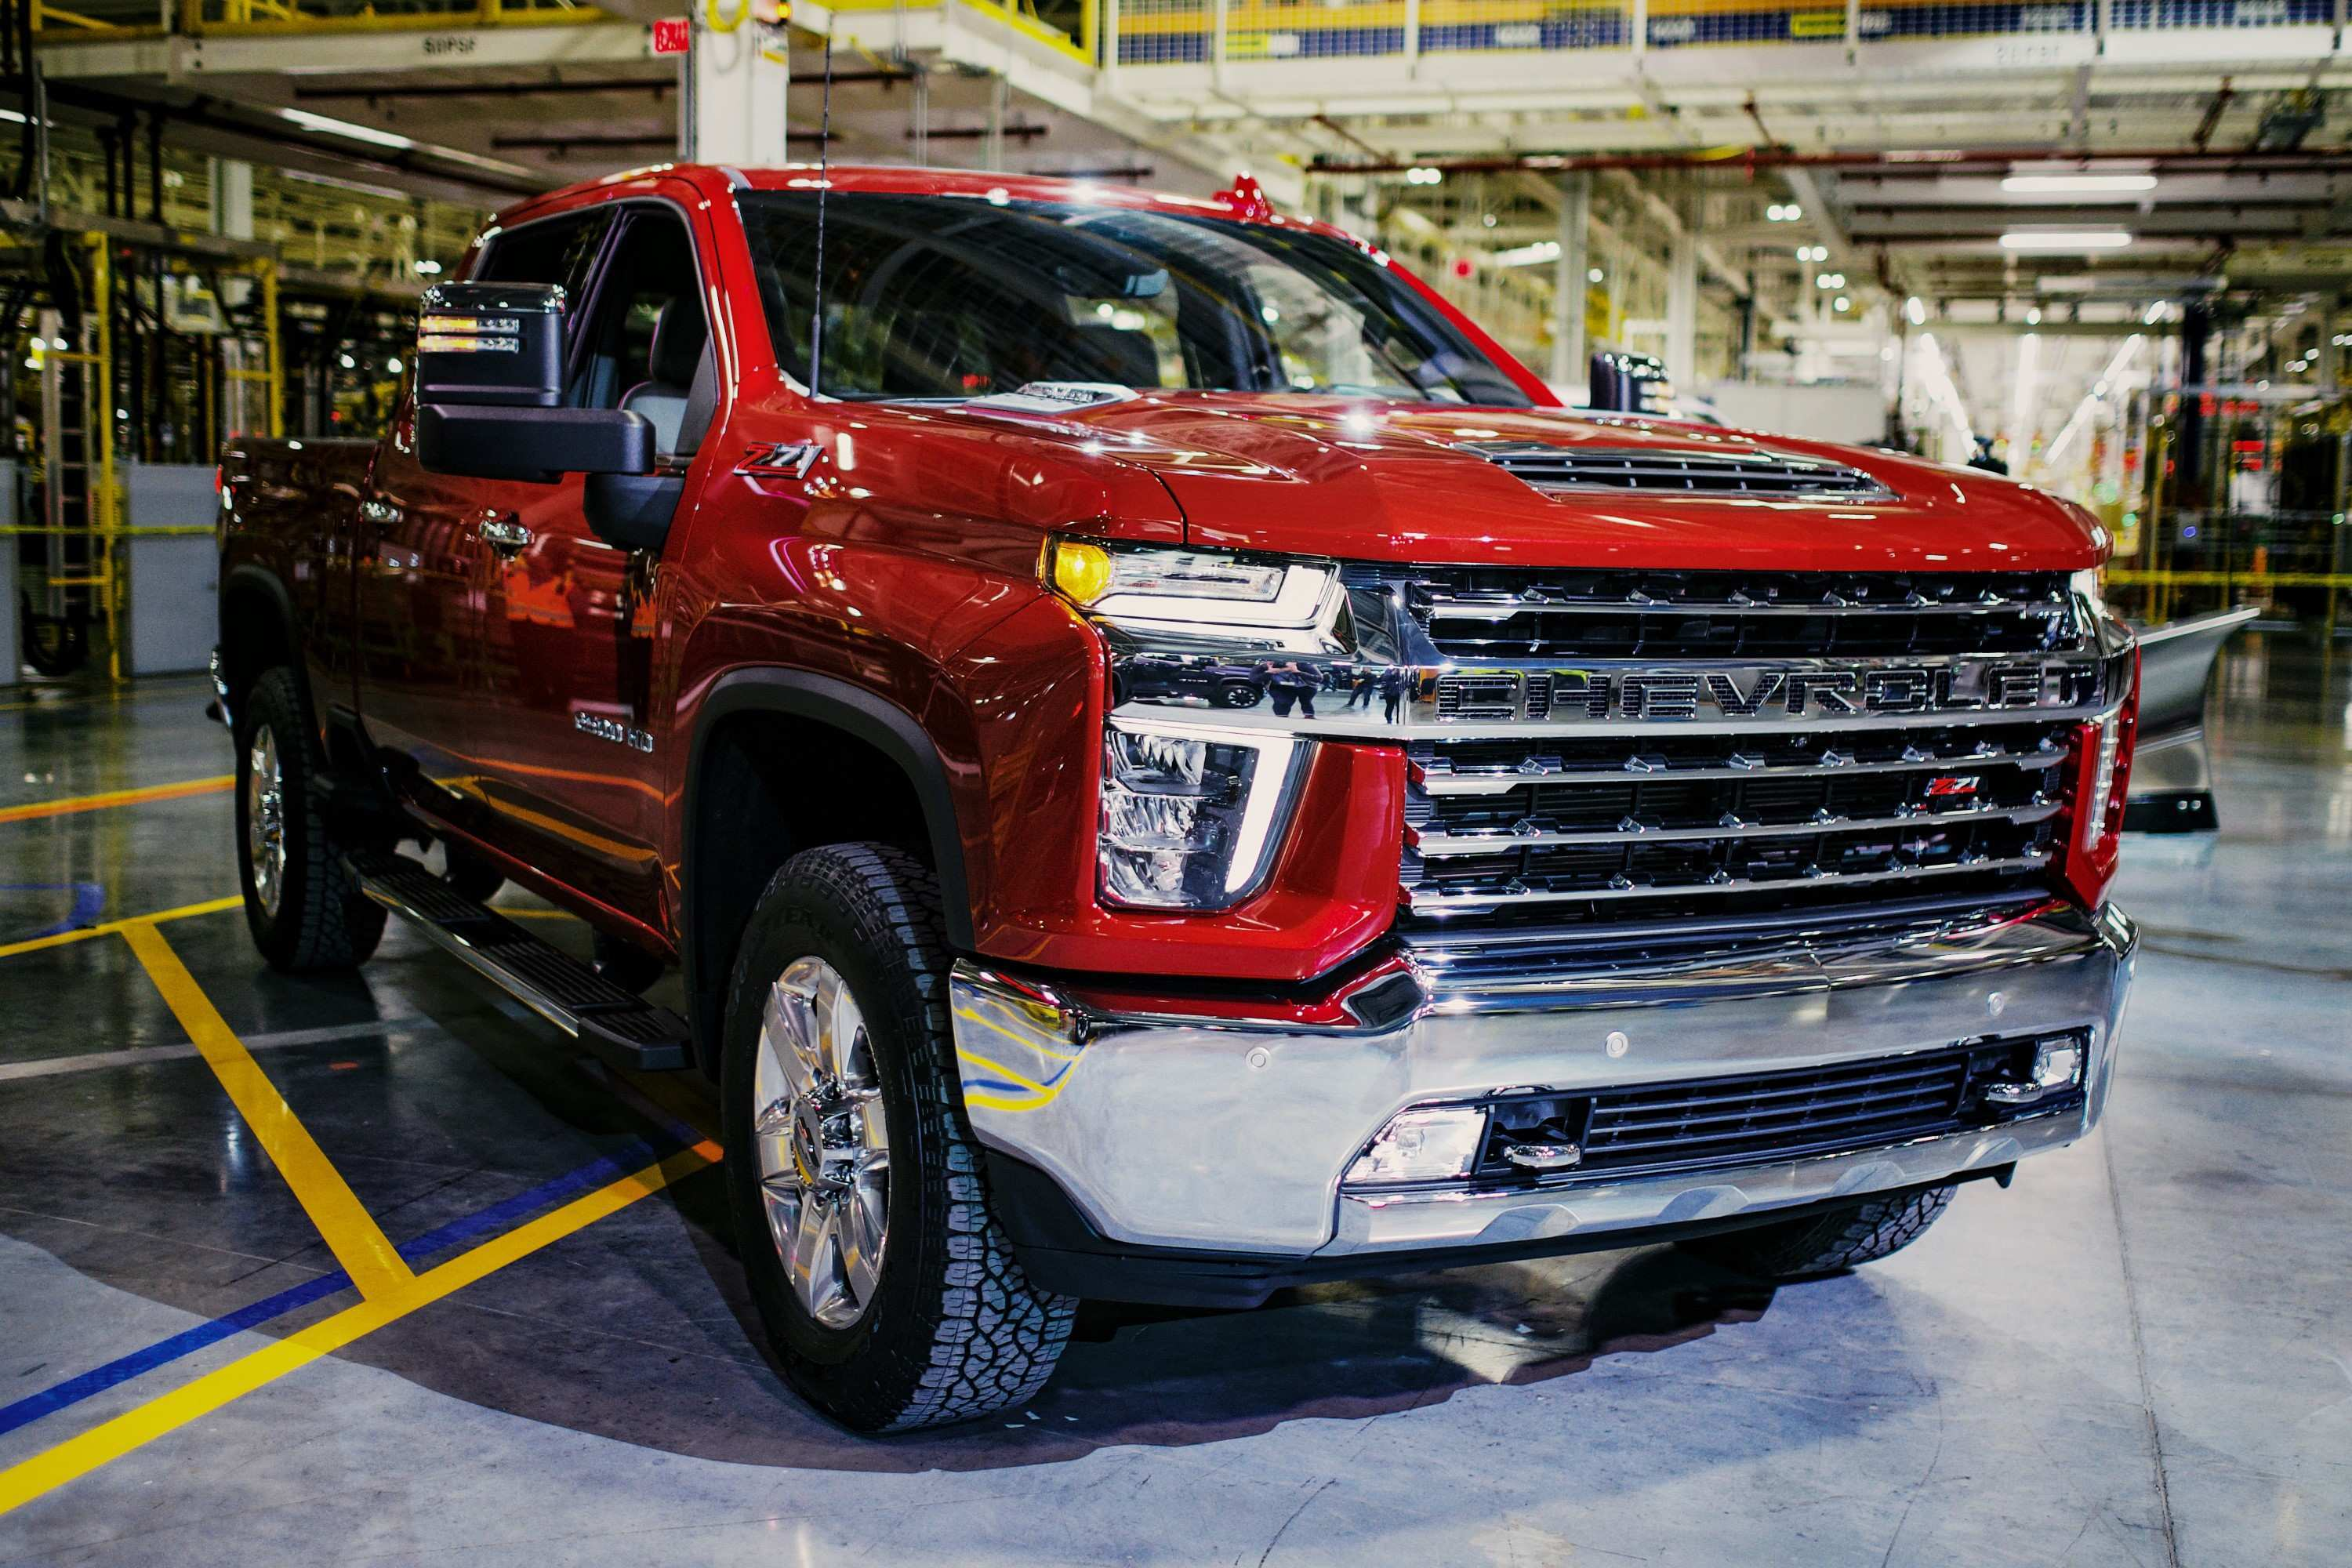 74 Gallery of 2020 Gmc 2500 Gas Specs and Review with 2020 Gmc 2500 Gas